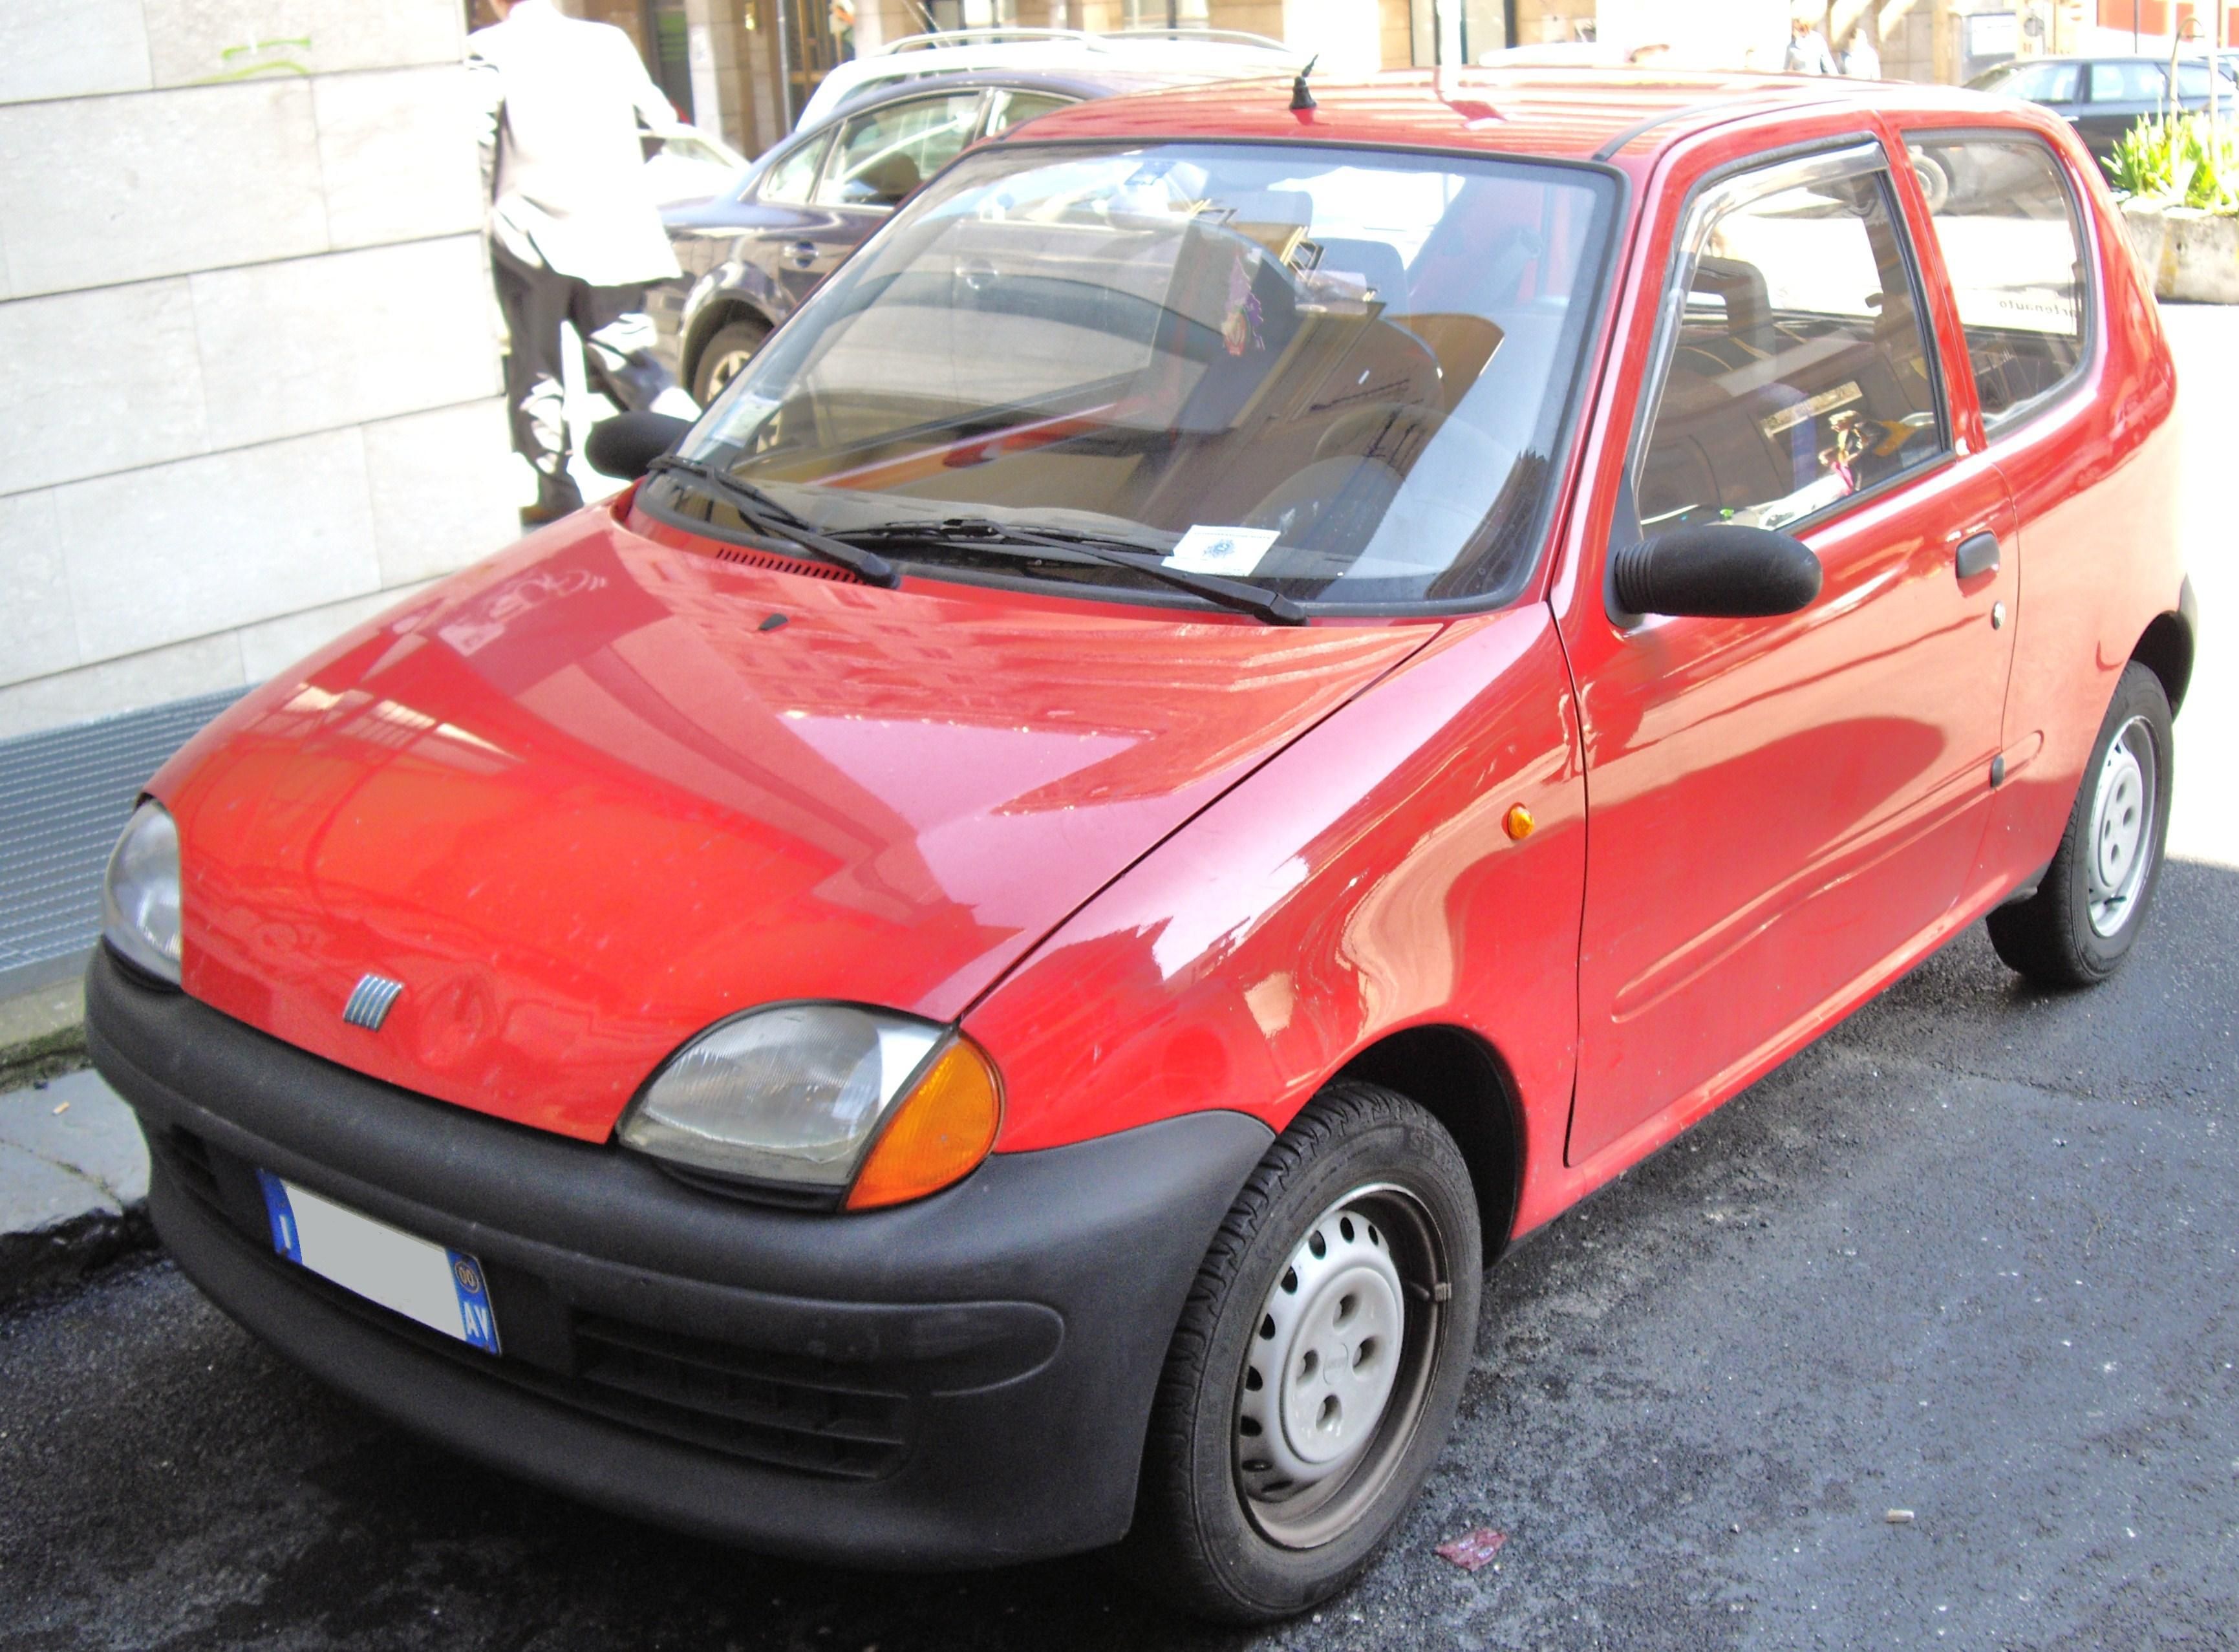 motor miles fiat reviews manual company seicento jpa vehicle